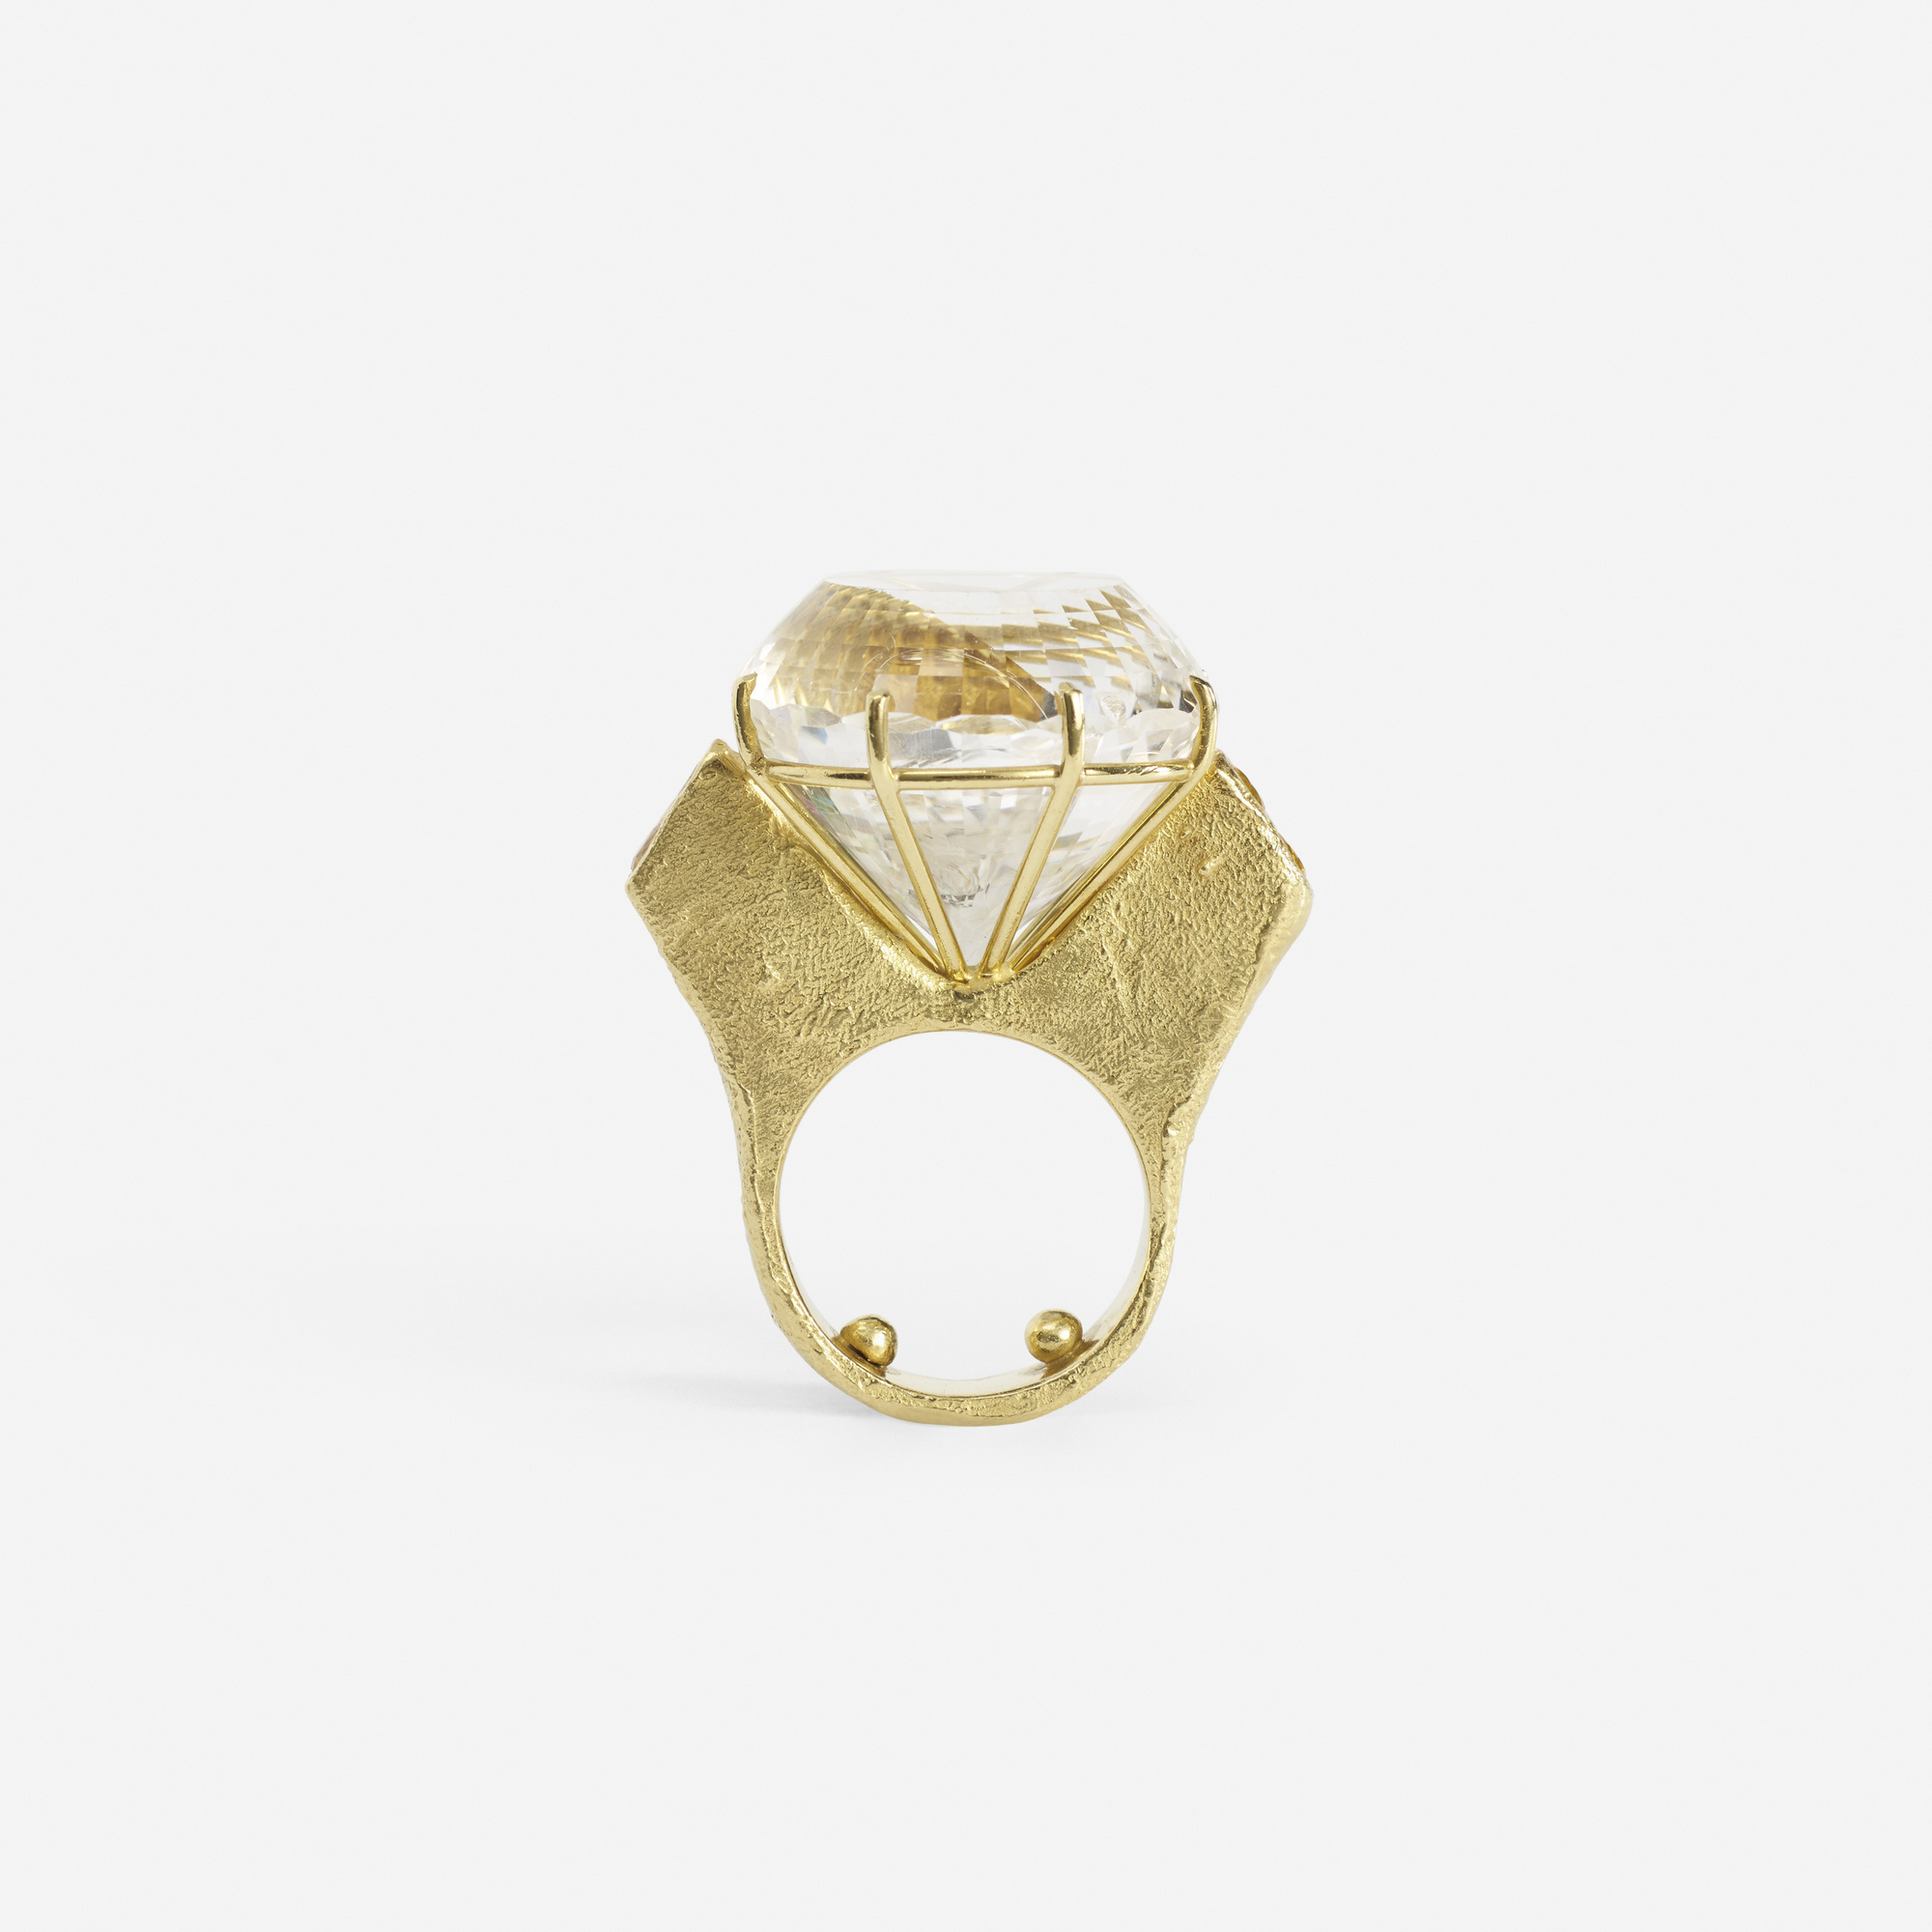 107:  / A gold and white topaz ring (1 of 2)